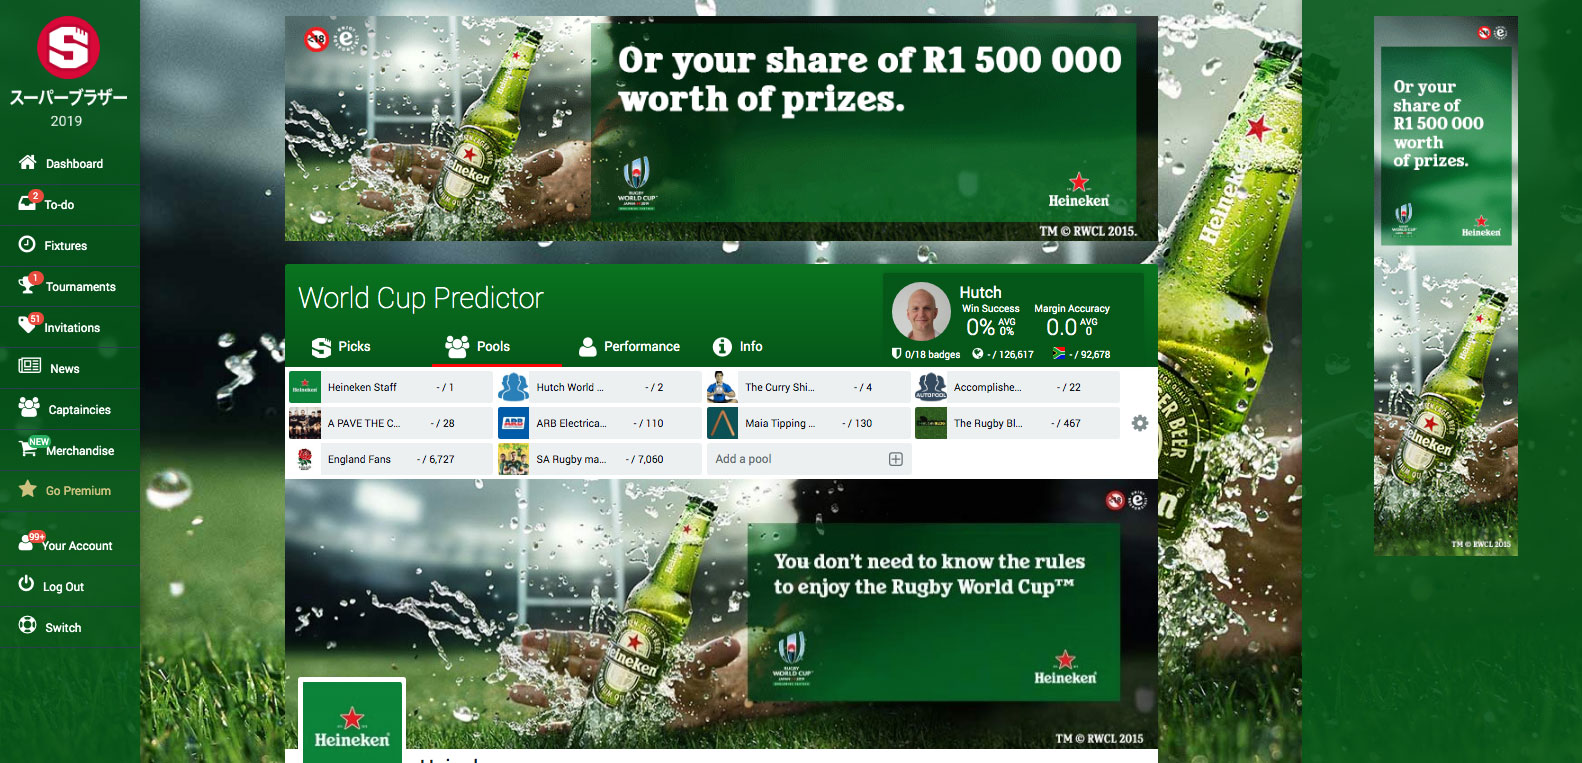 Heineken tournament sponsorship on Superbru, Rugby World Cup 2019